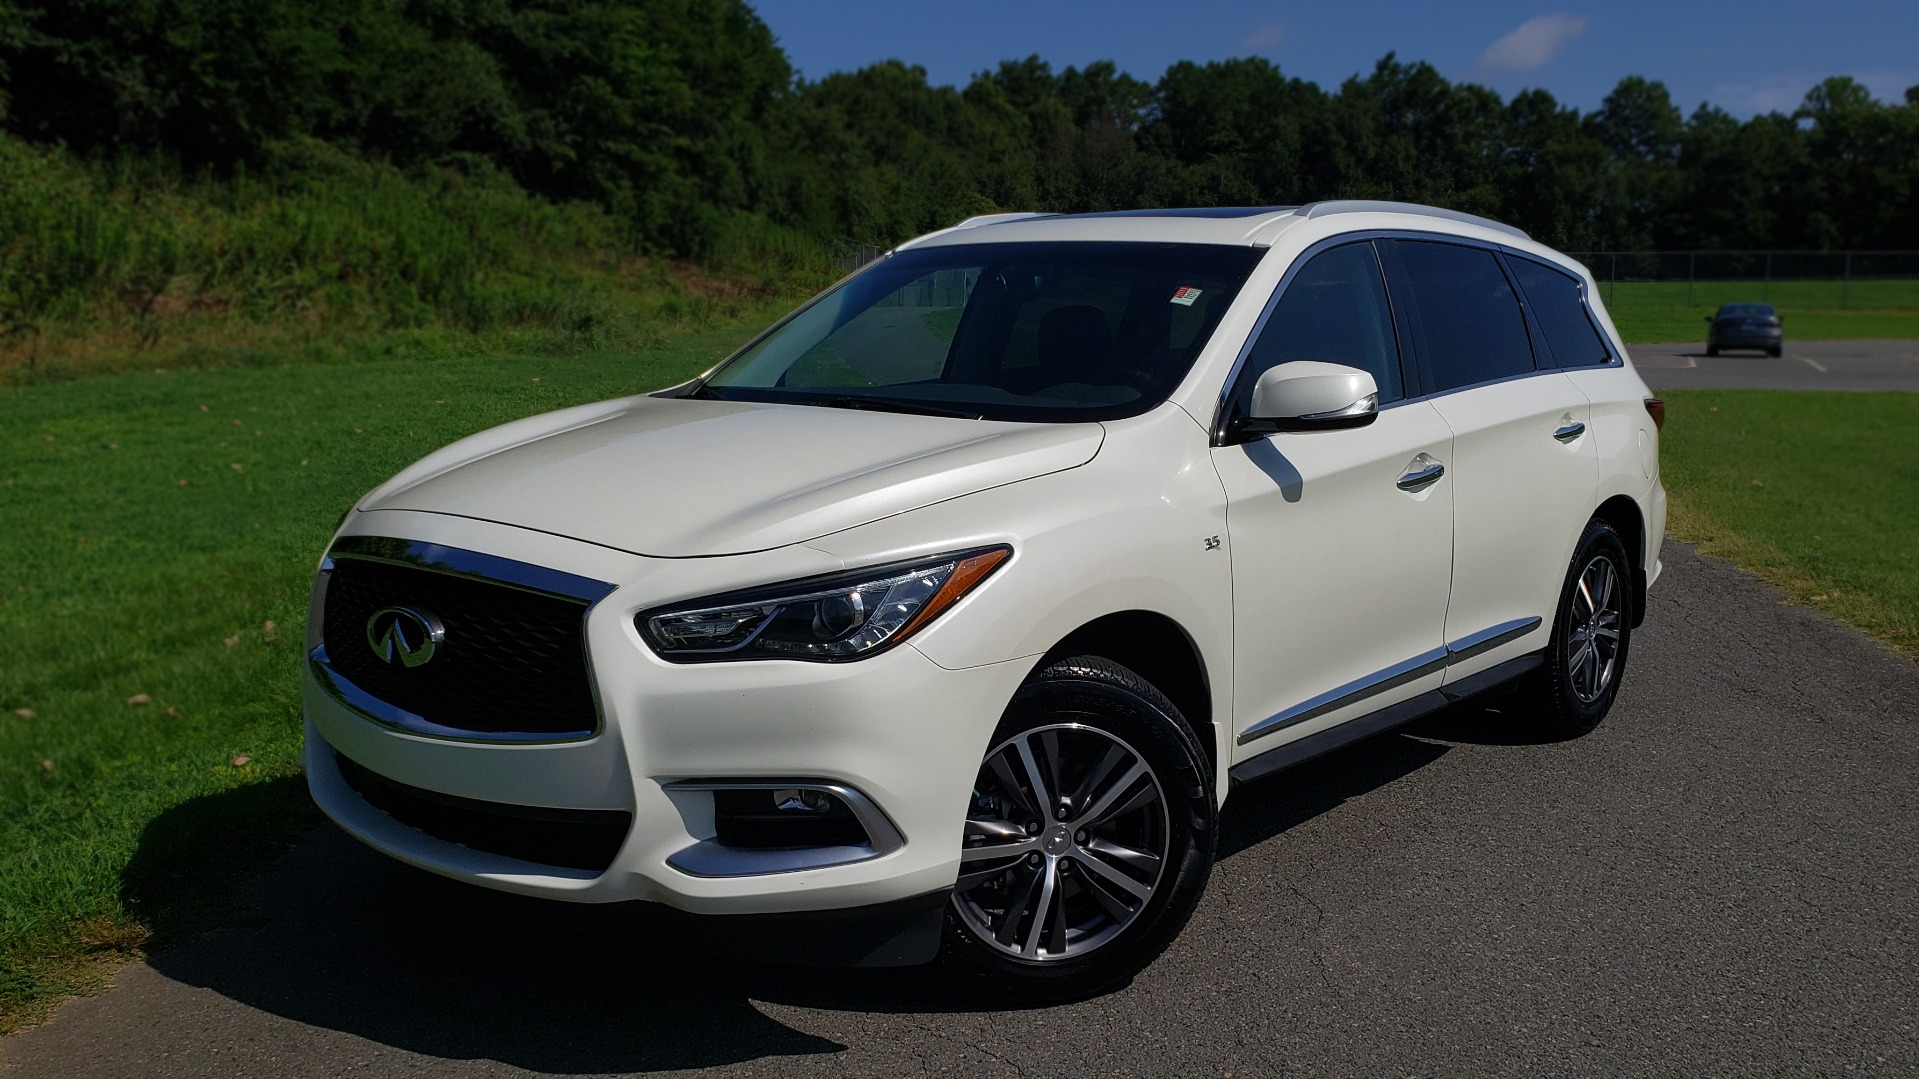 Used 2016 Infiniti QX60 AWD / 3.5L V6 / SUNROOF / HTD STS / 3-ROW / TOWING / REARVIEW for sale Sold at Formula Imports in Charlotte NC 28227 1